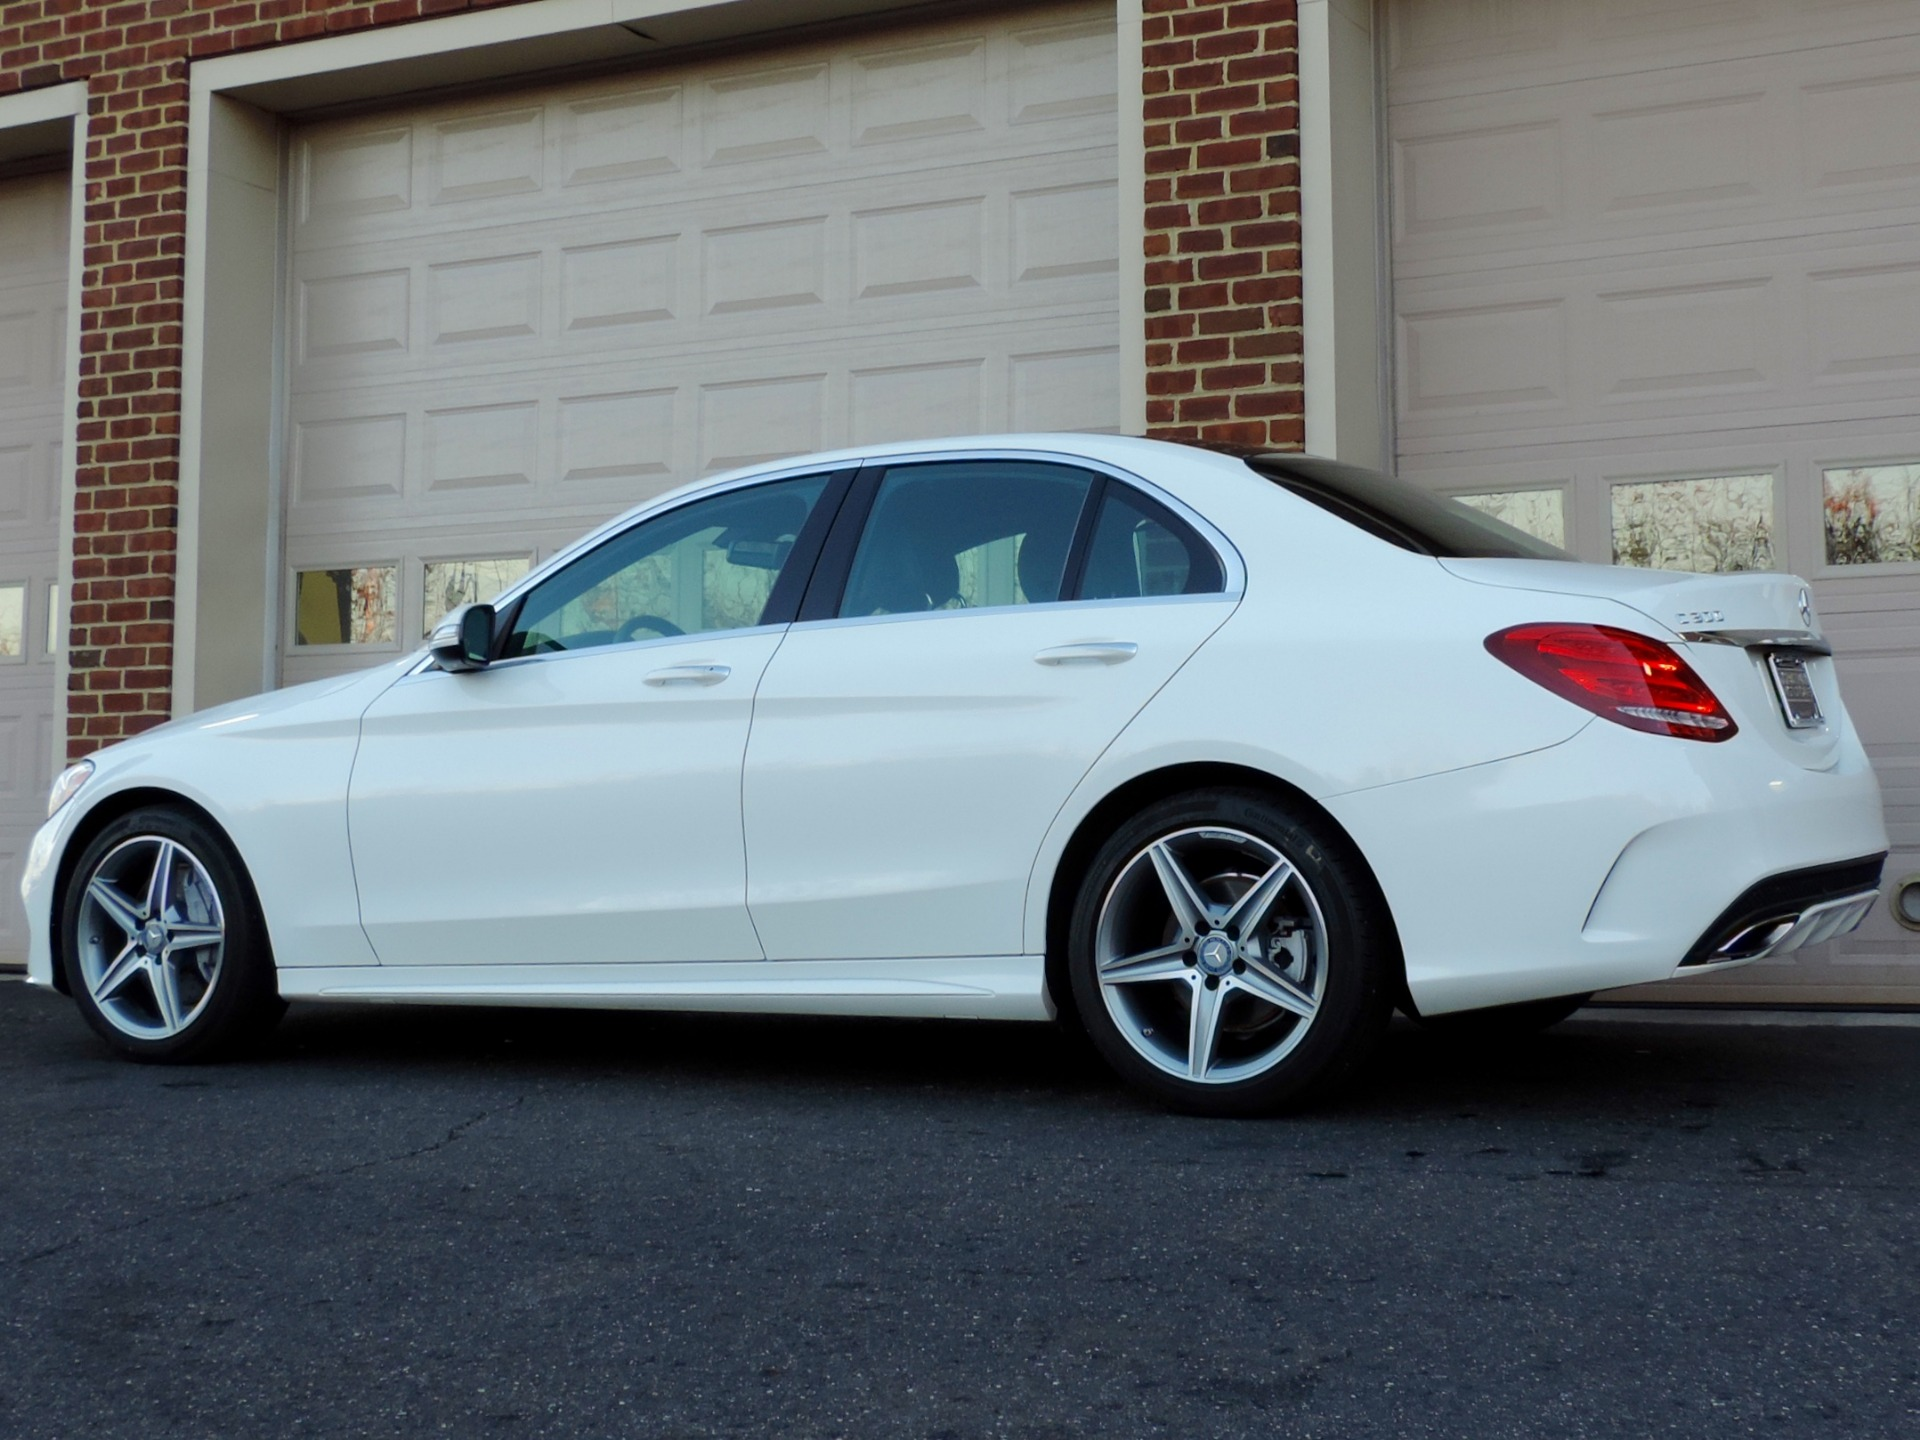 ext mercedes class msrp view look review benz mpg store quick of rear sedan whats c clas